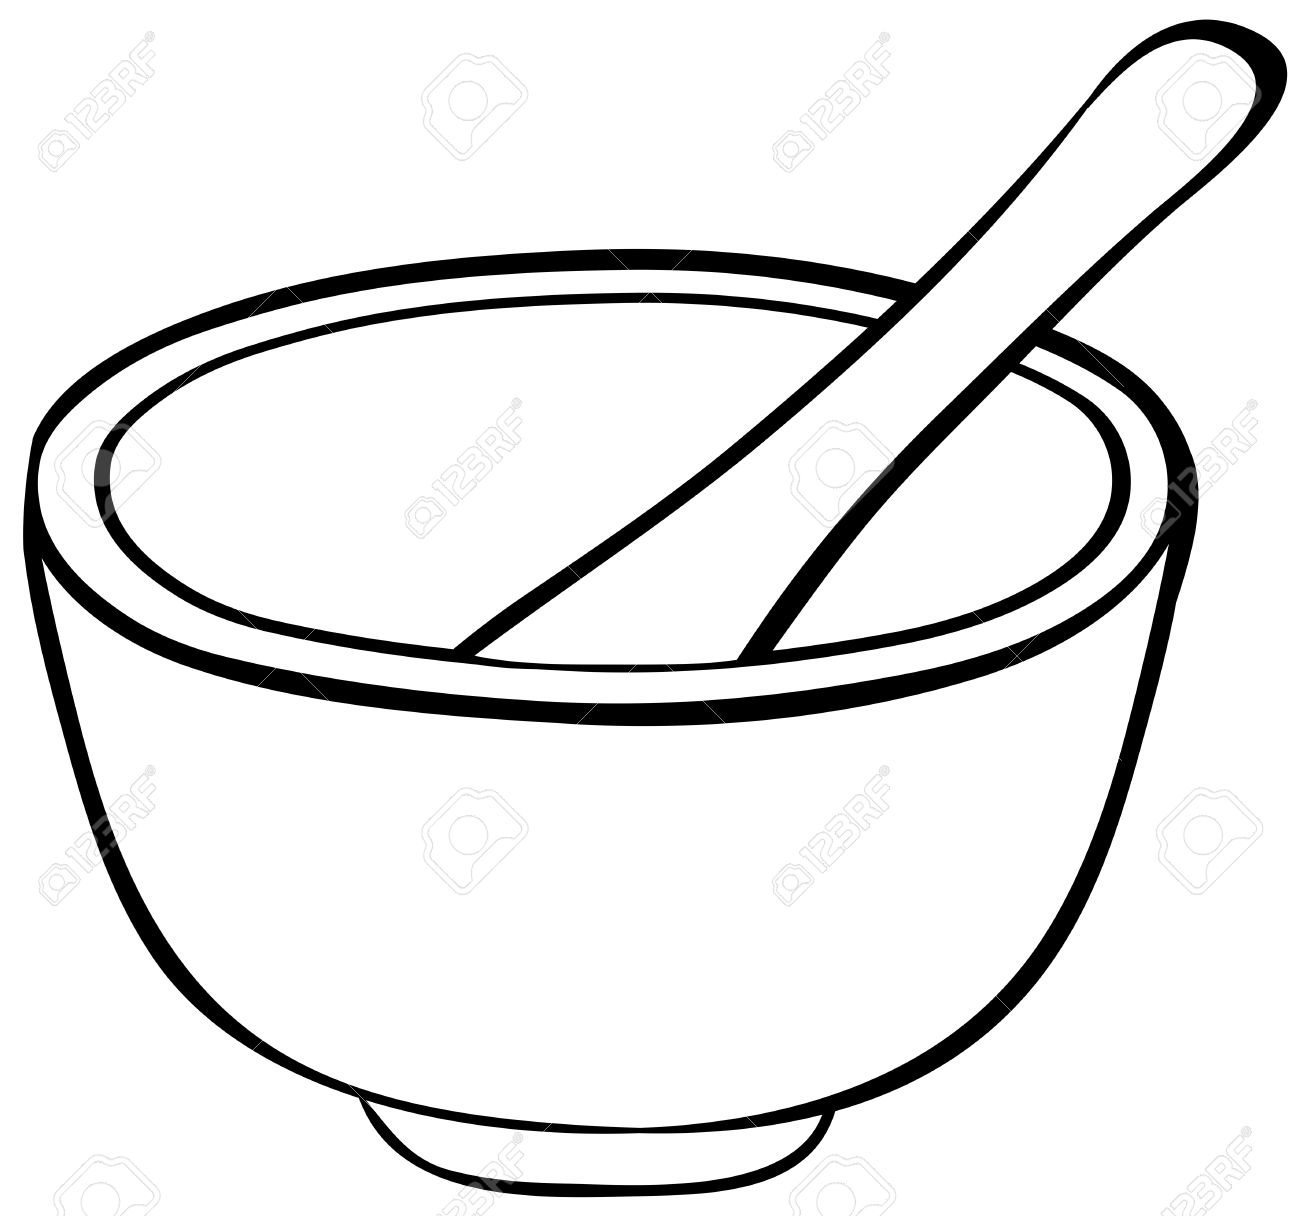 Bowl Of Chili Drawing At Getdrawings